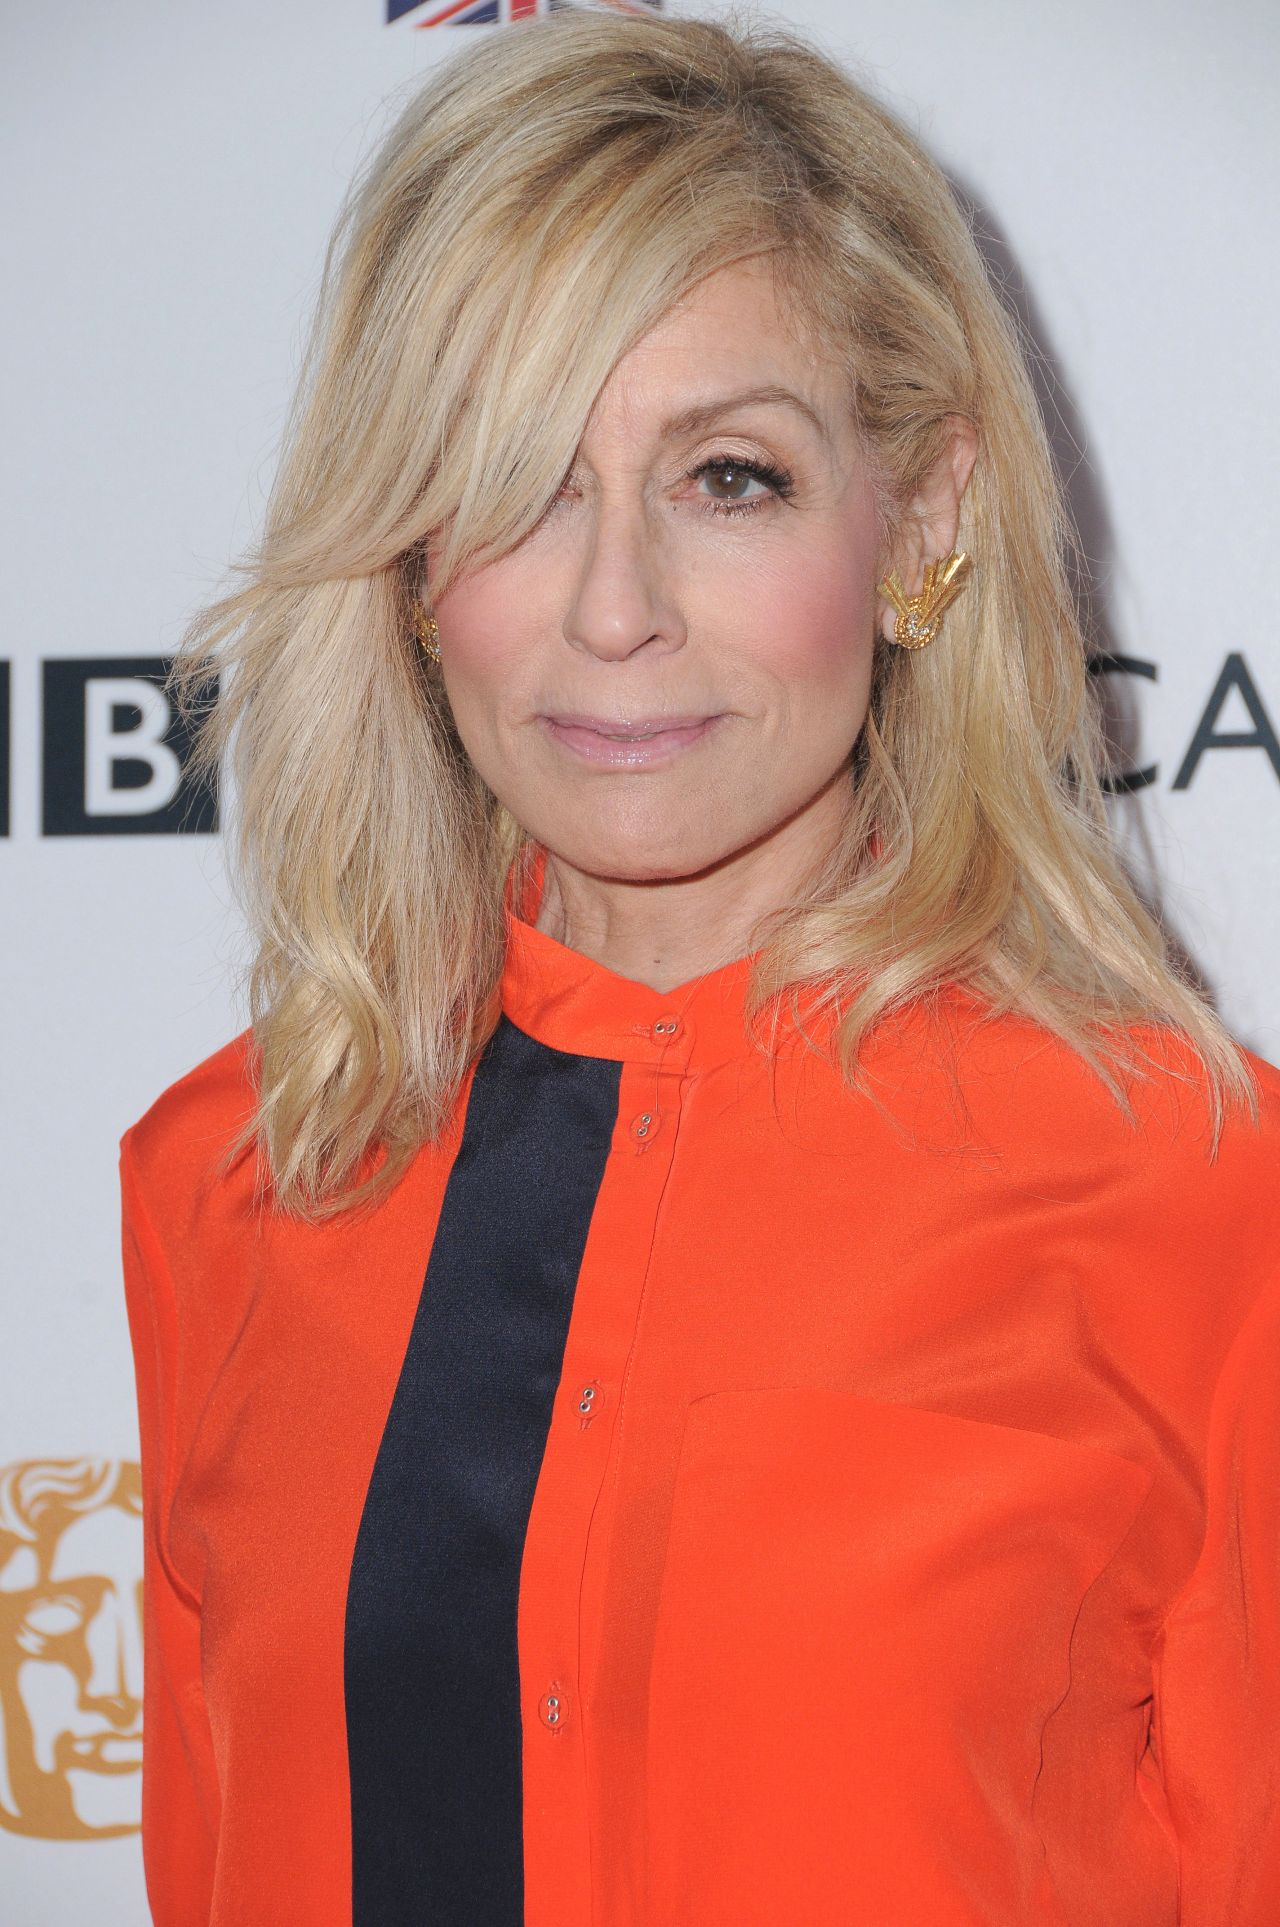 Judith Light Bafta Tea Party In Los Angeles 09 16 2017